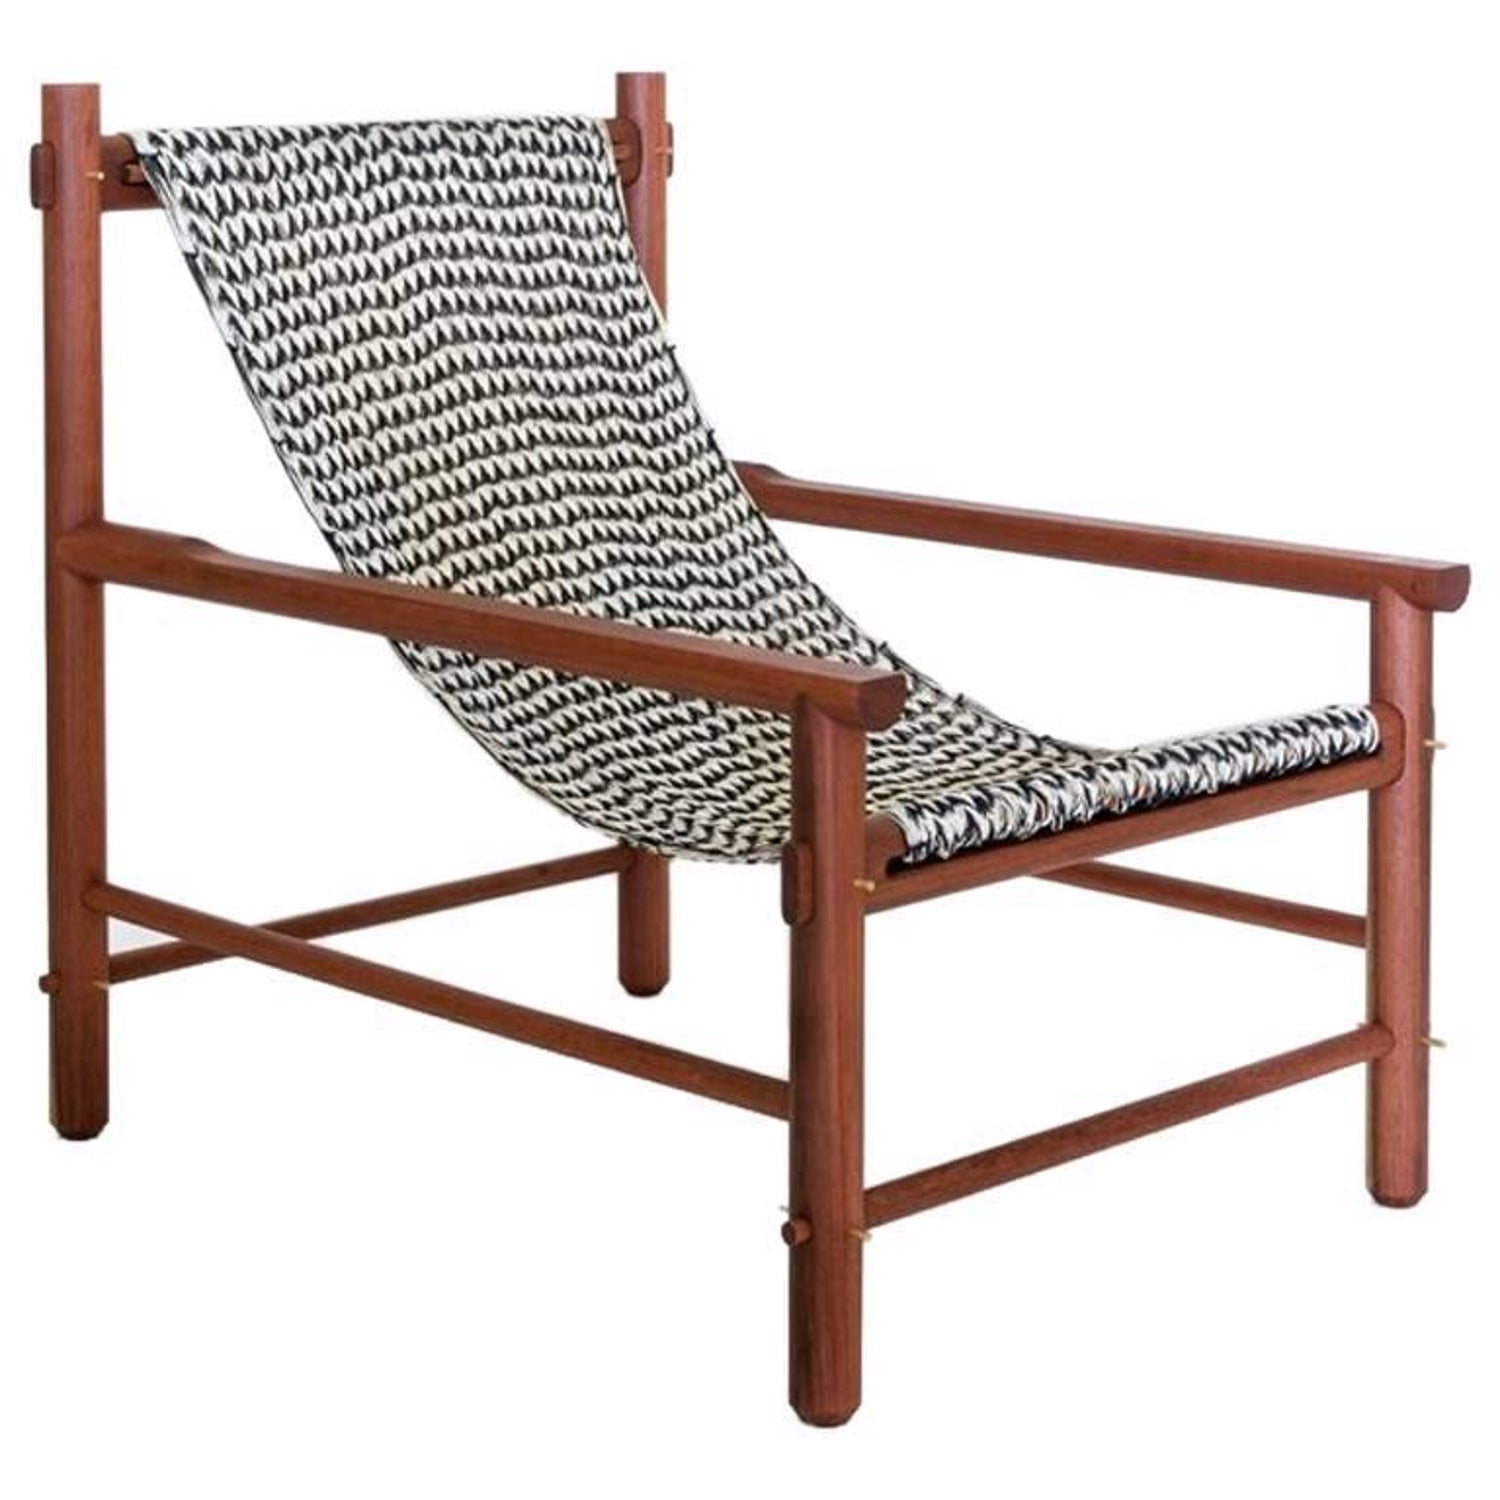 Strange Montauk Lounge Chairs 9 For Sale At 1Stdibs Andrewgaddart Wooden Chair Designs For Living Room Andrewgaddartcom